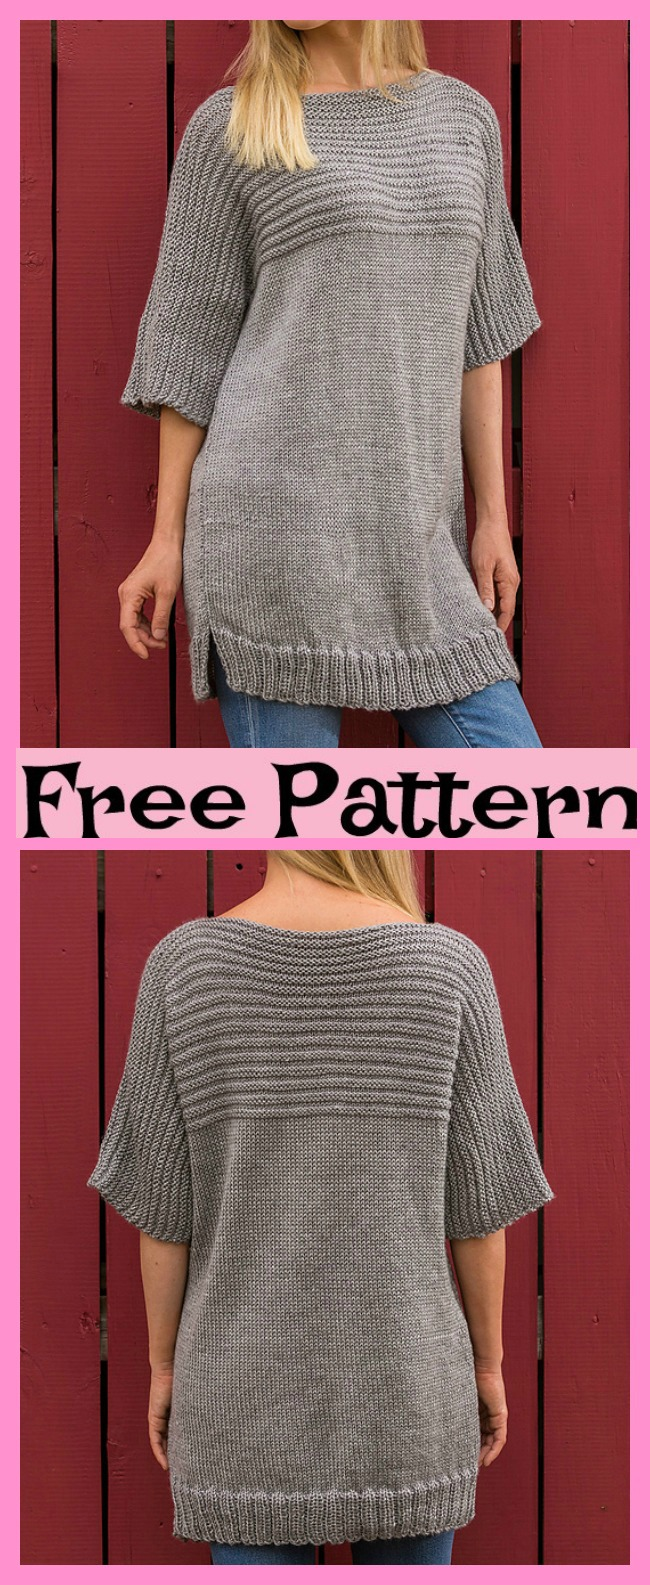 diy4ever-Knit Big Comfy Sweater - Free Pattern